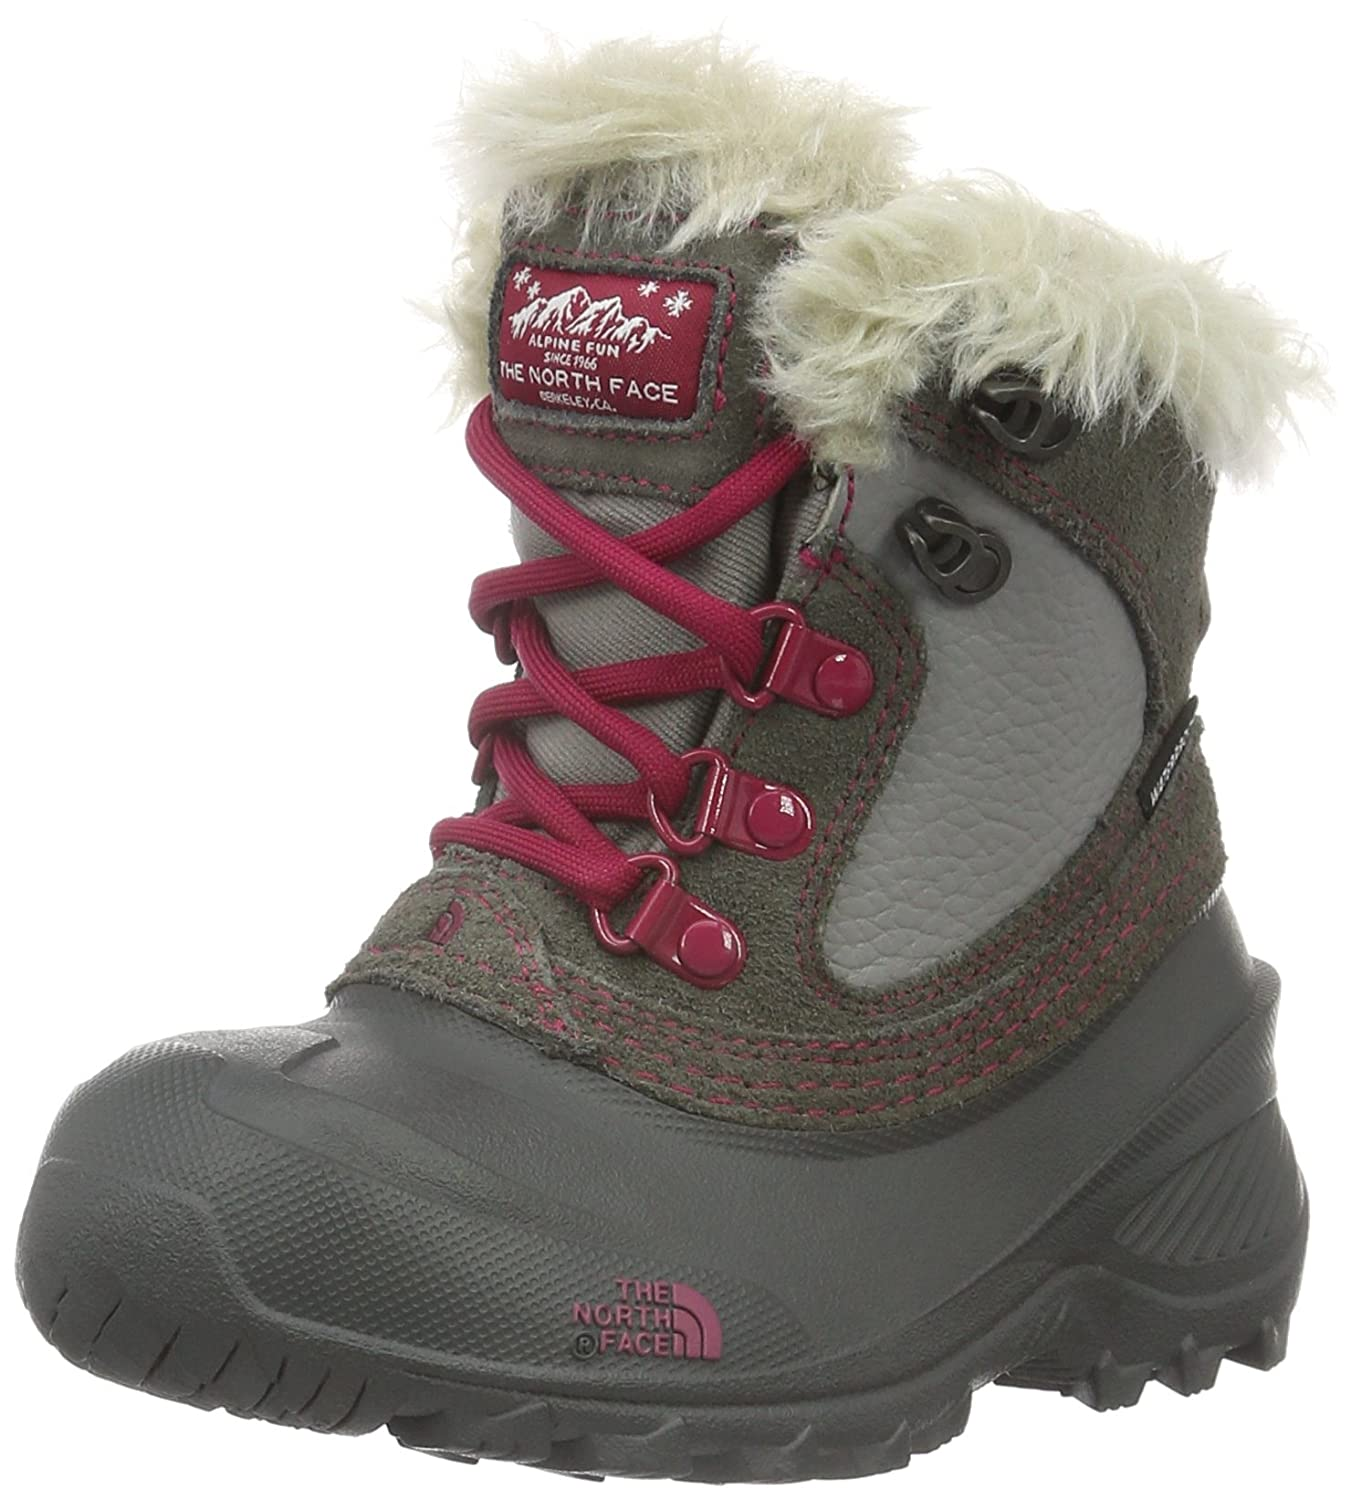 The North Face Kids' Shellista Extreme Insulated Boot A2T5V